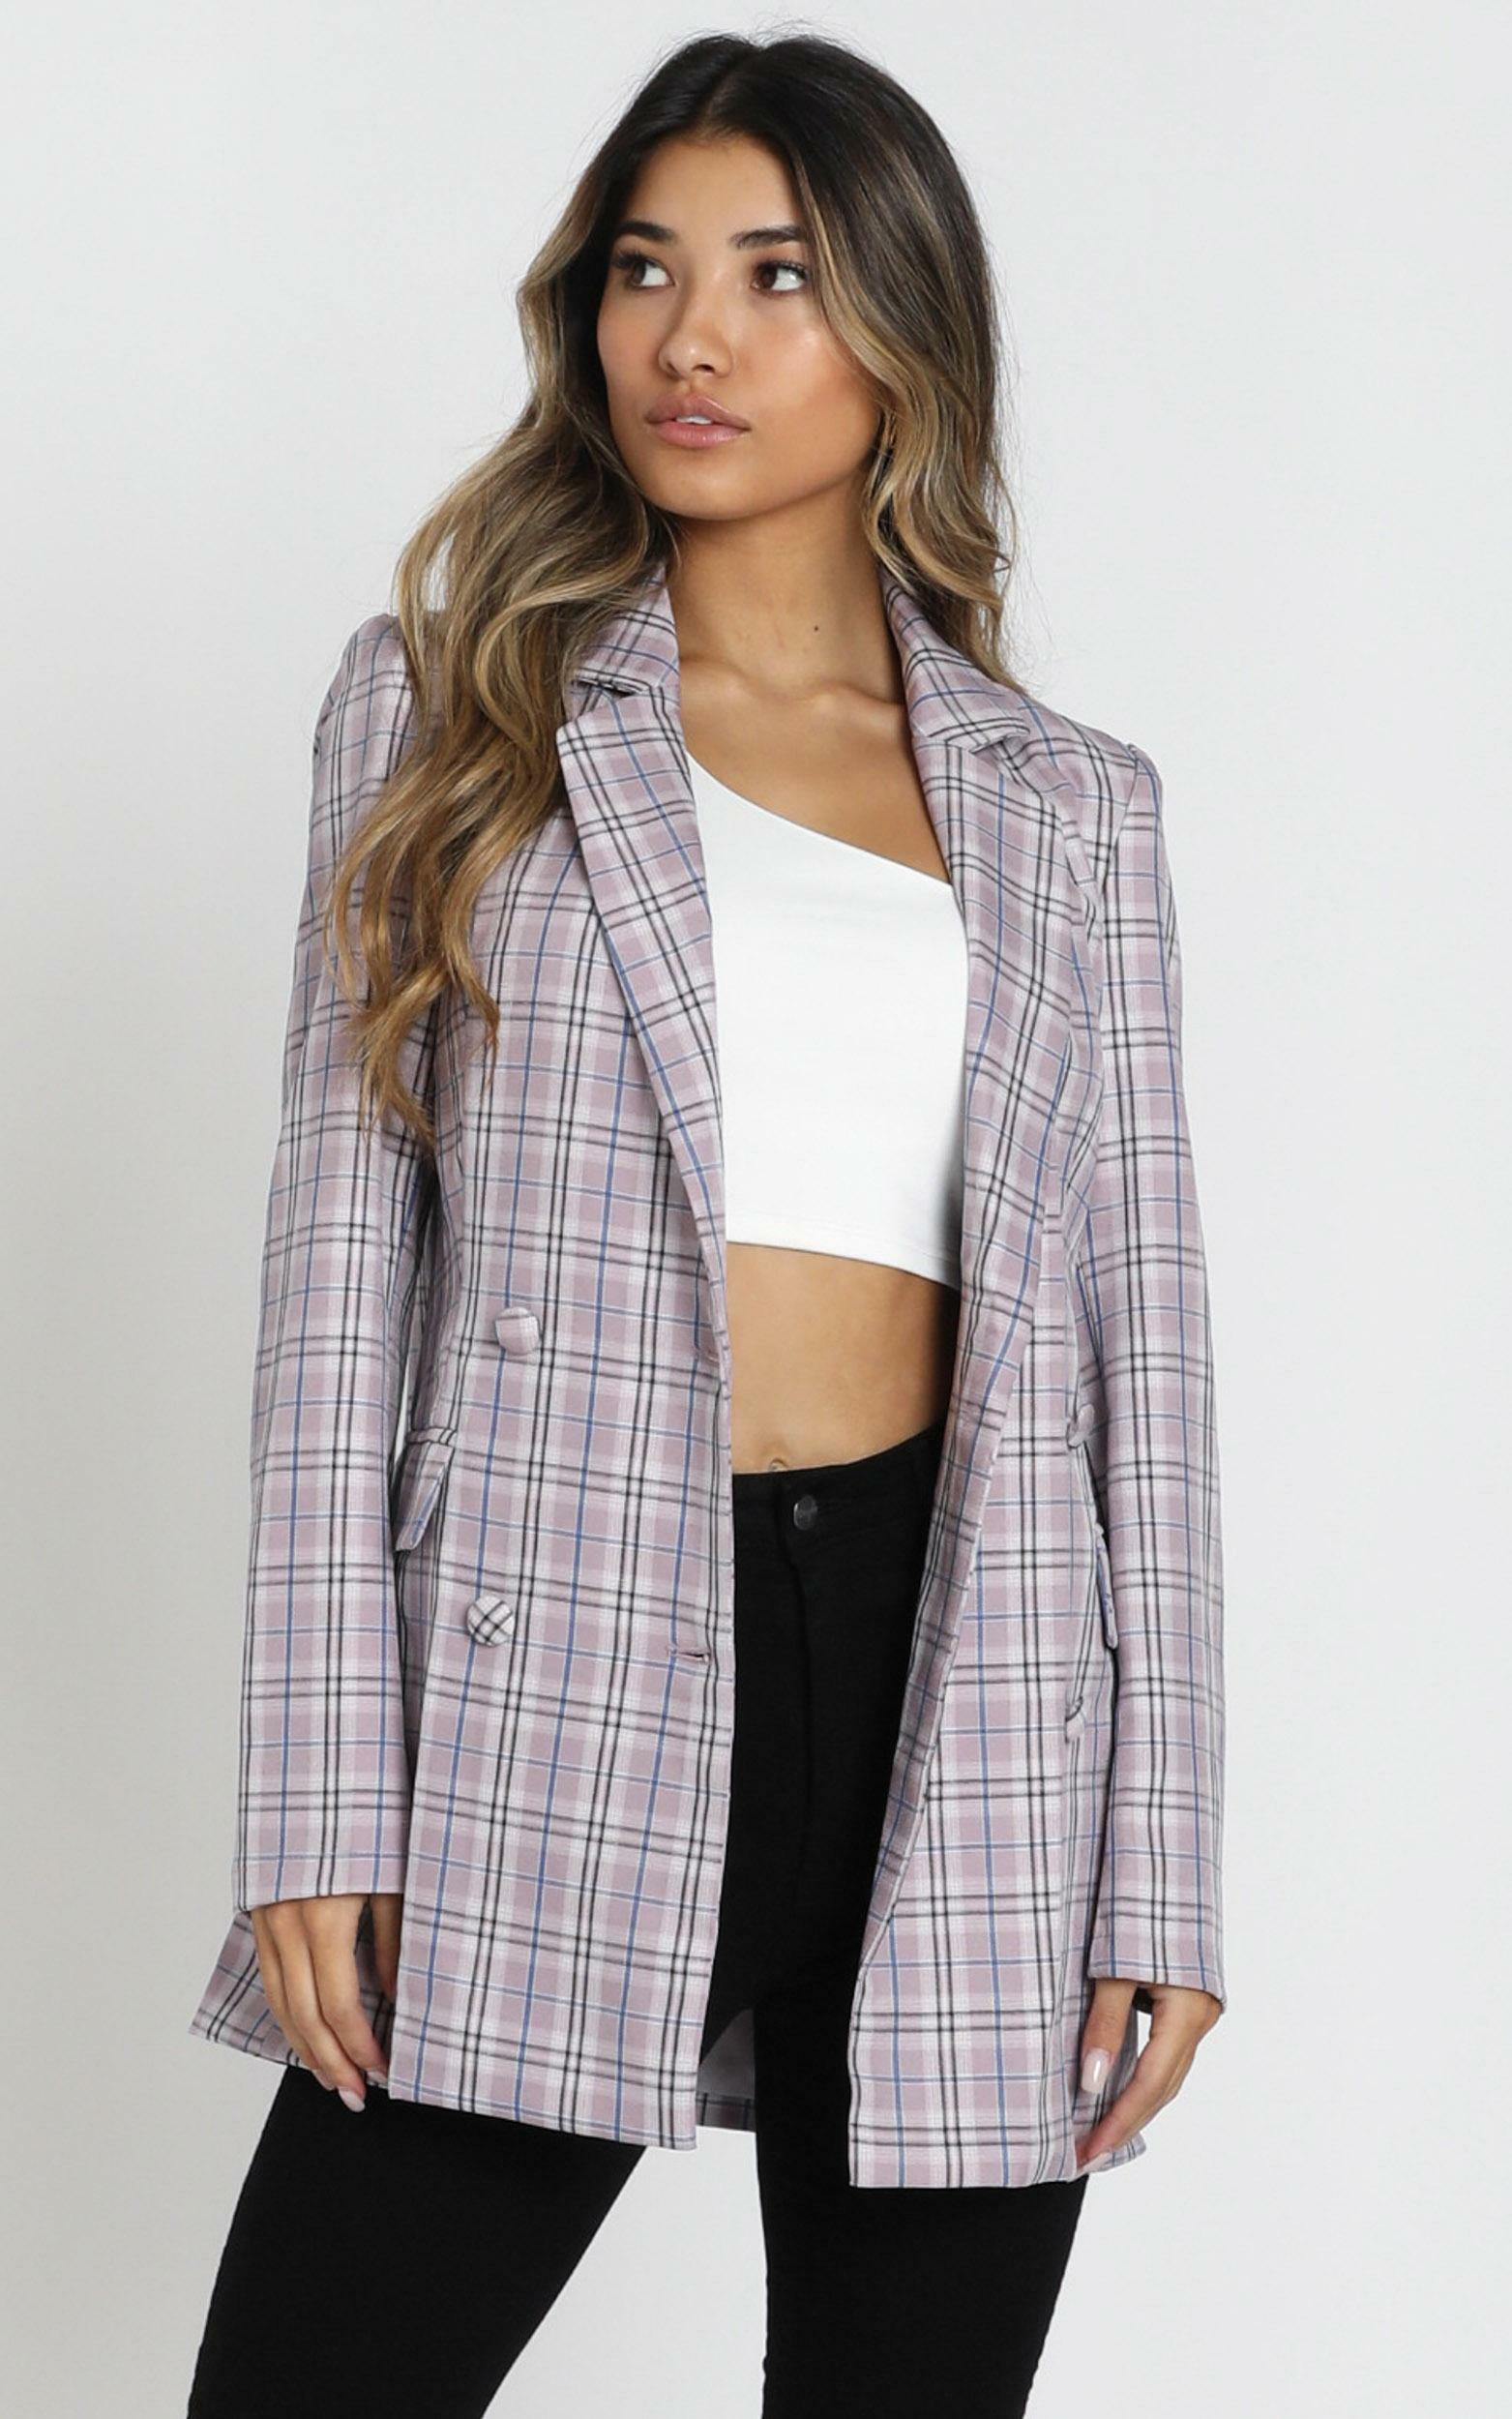 Sort It Out Blazer in lilac check - 14 (XL), Purple, hi-res image number null